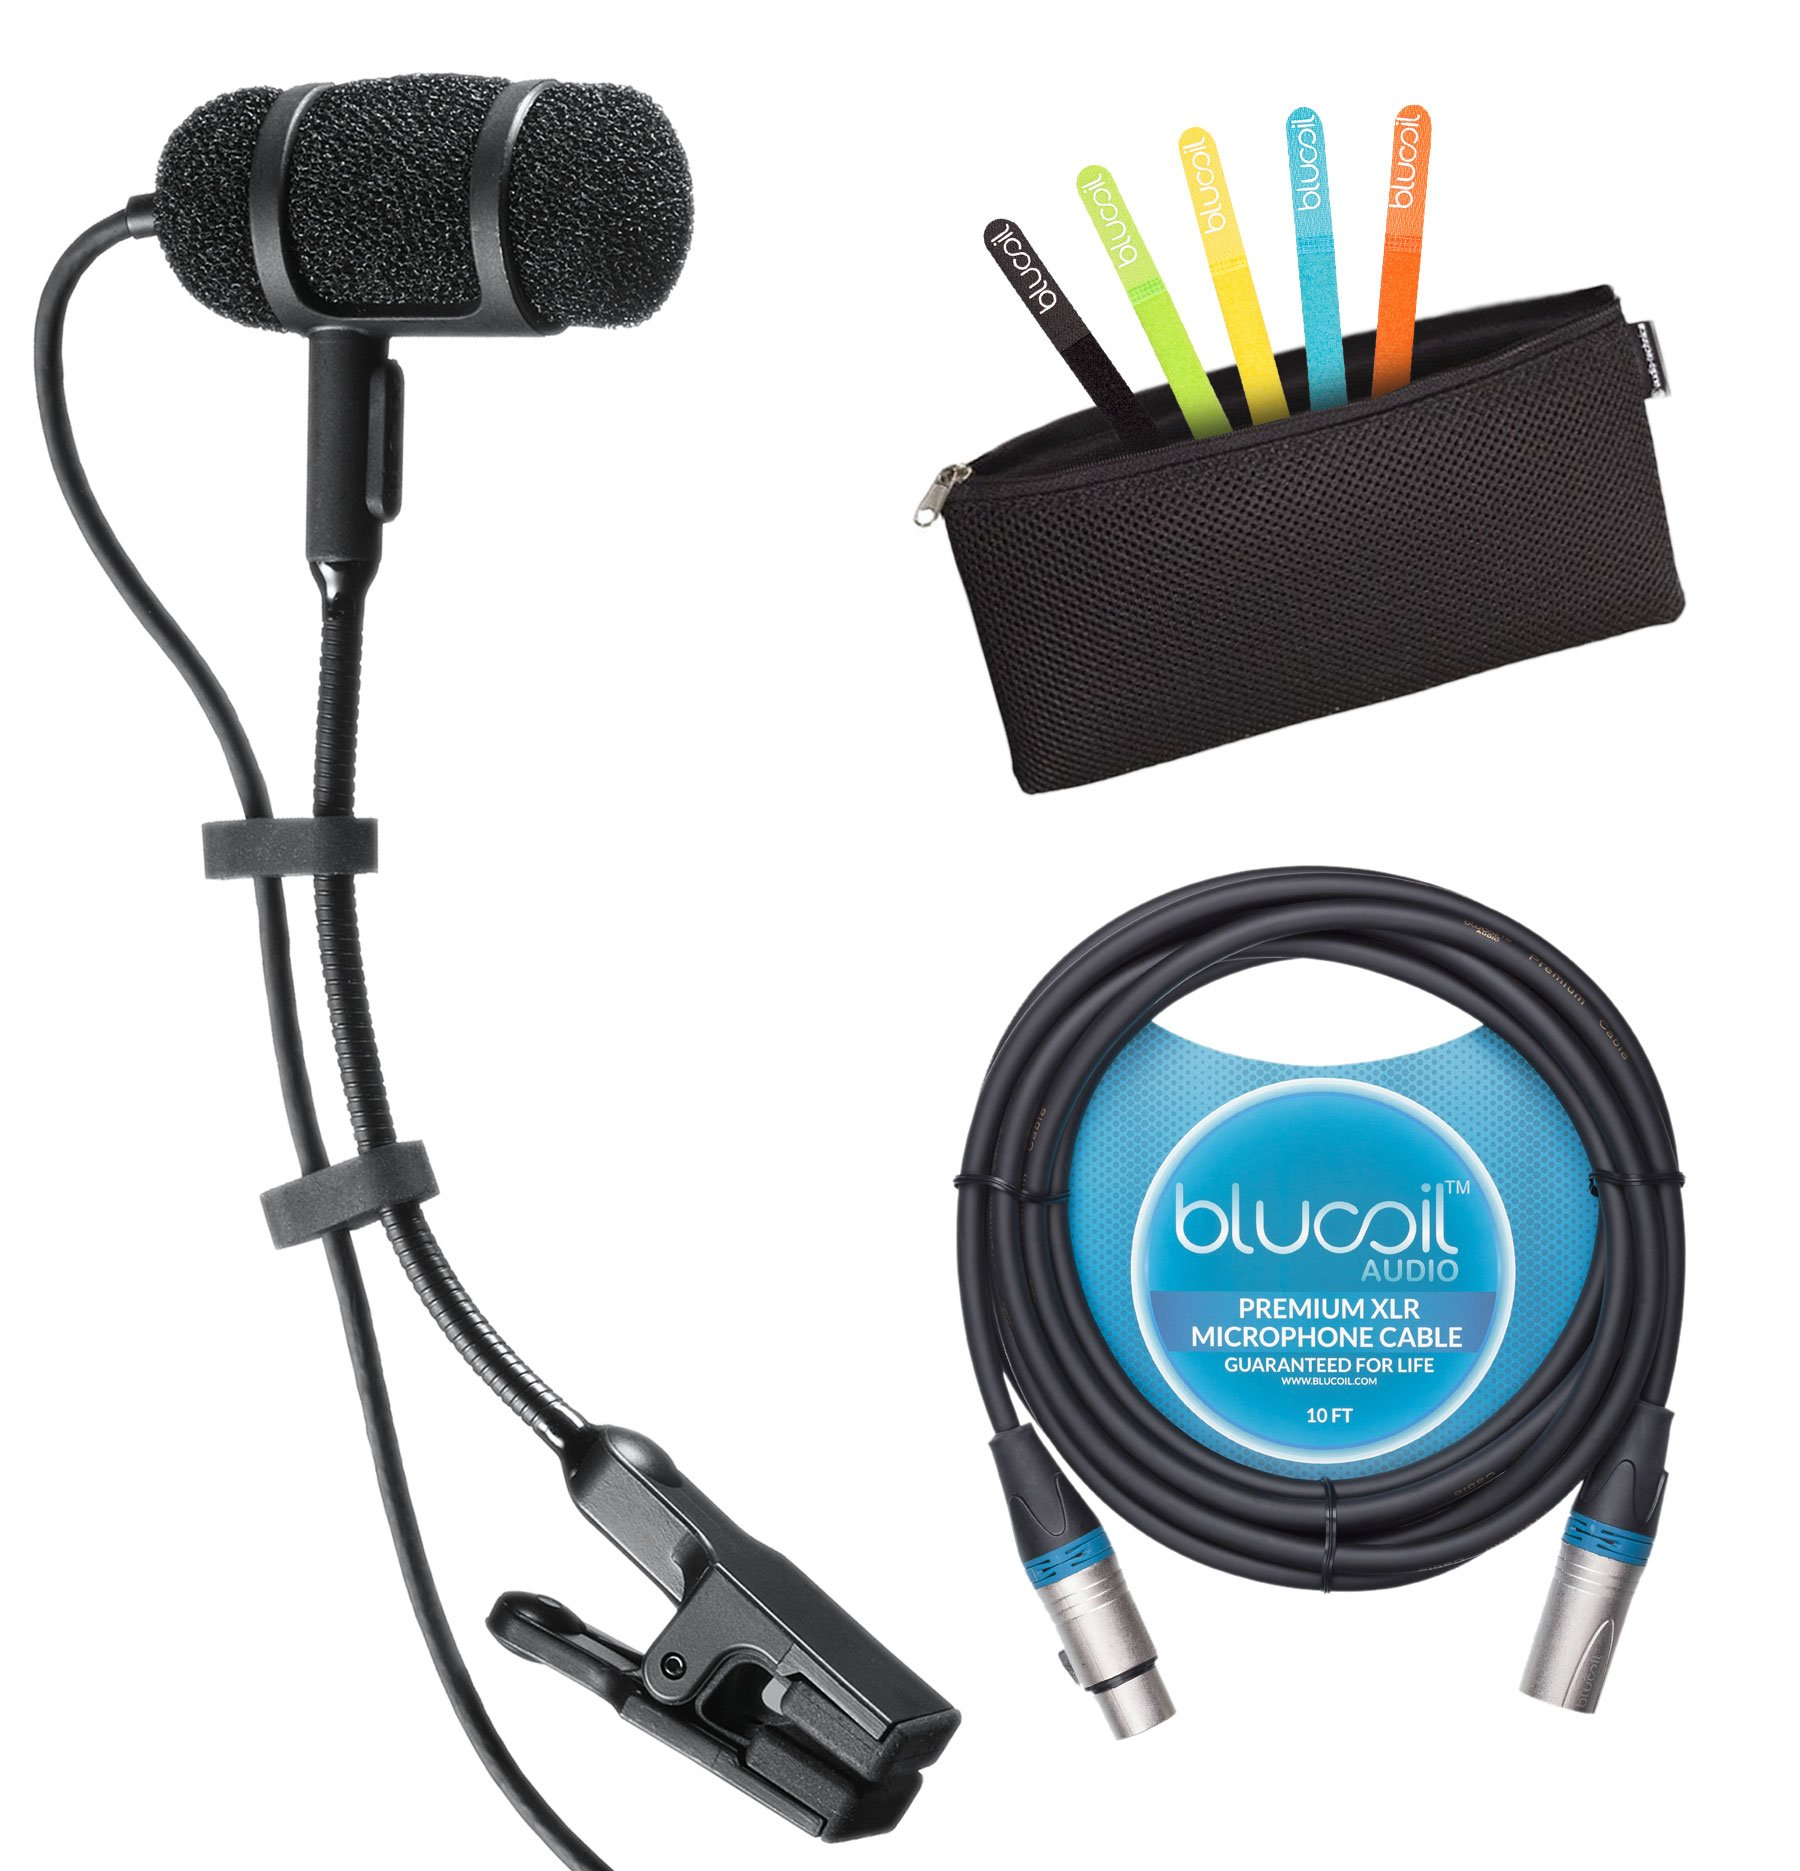 Audio-Technica PRO 35 Cardioid Condenser Clip-on Instrument Microphone Bundle - INCLUDES Protective Pouch, Blucoil 10ft XLR Cable PLUS 5 Pack Blucoil Cable Ties